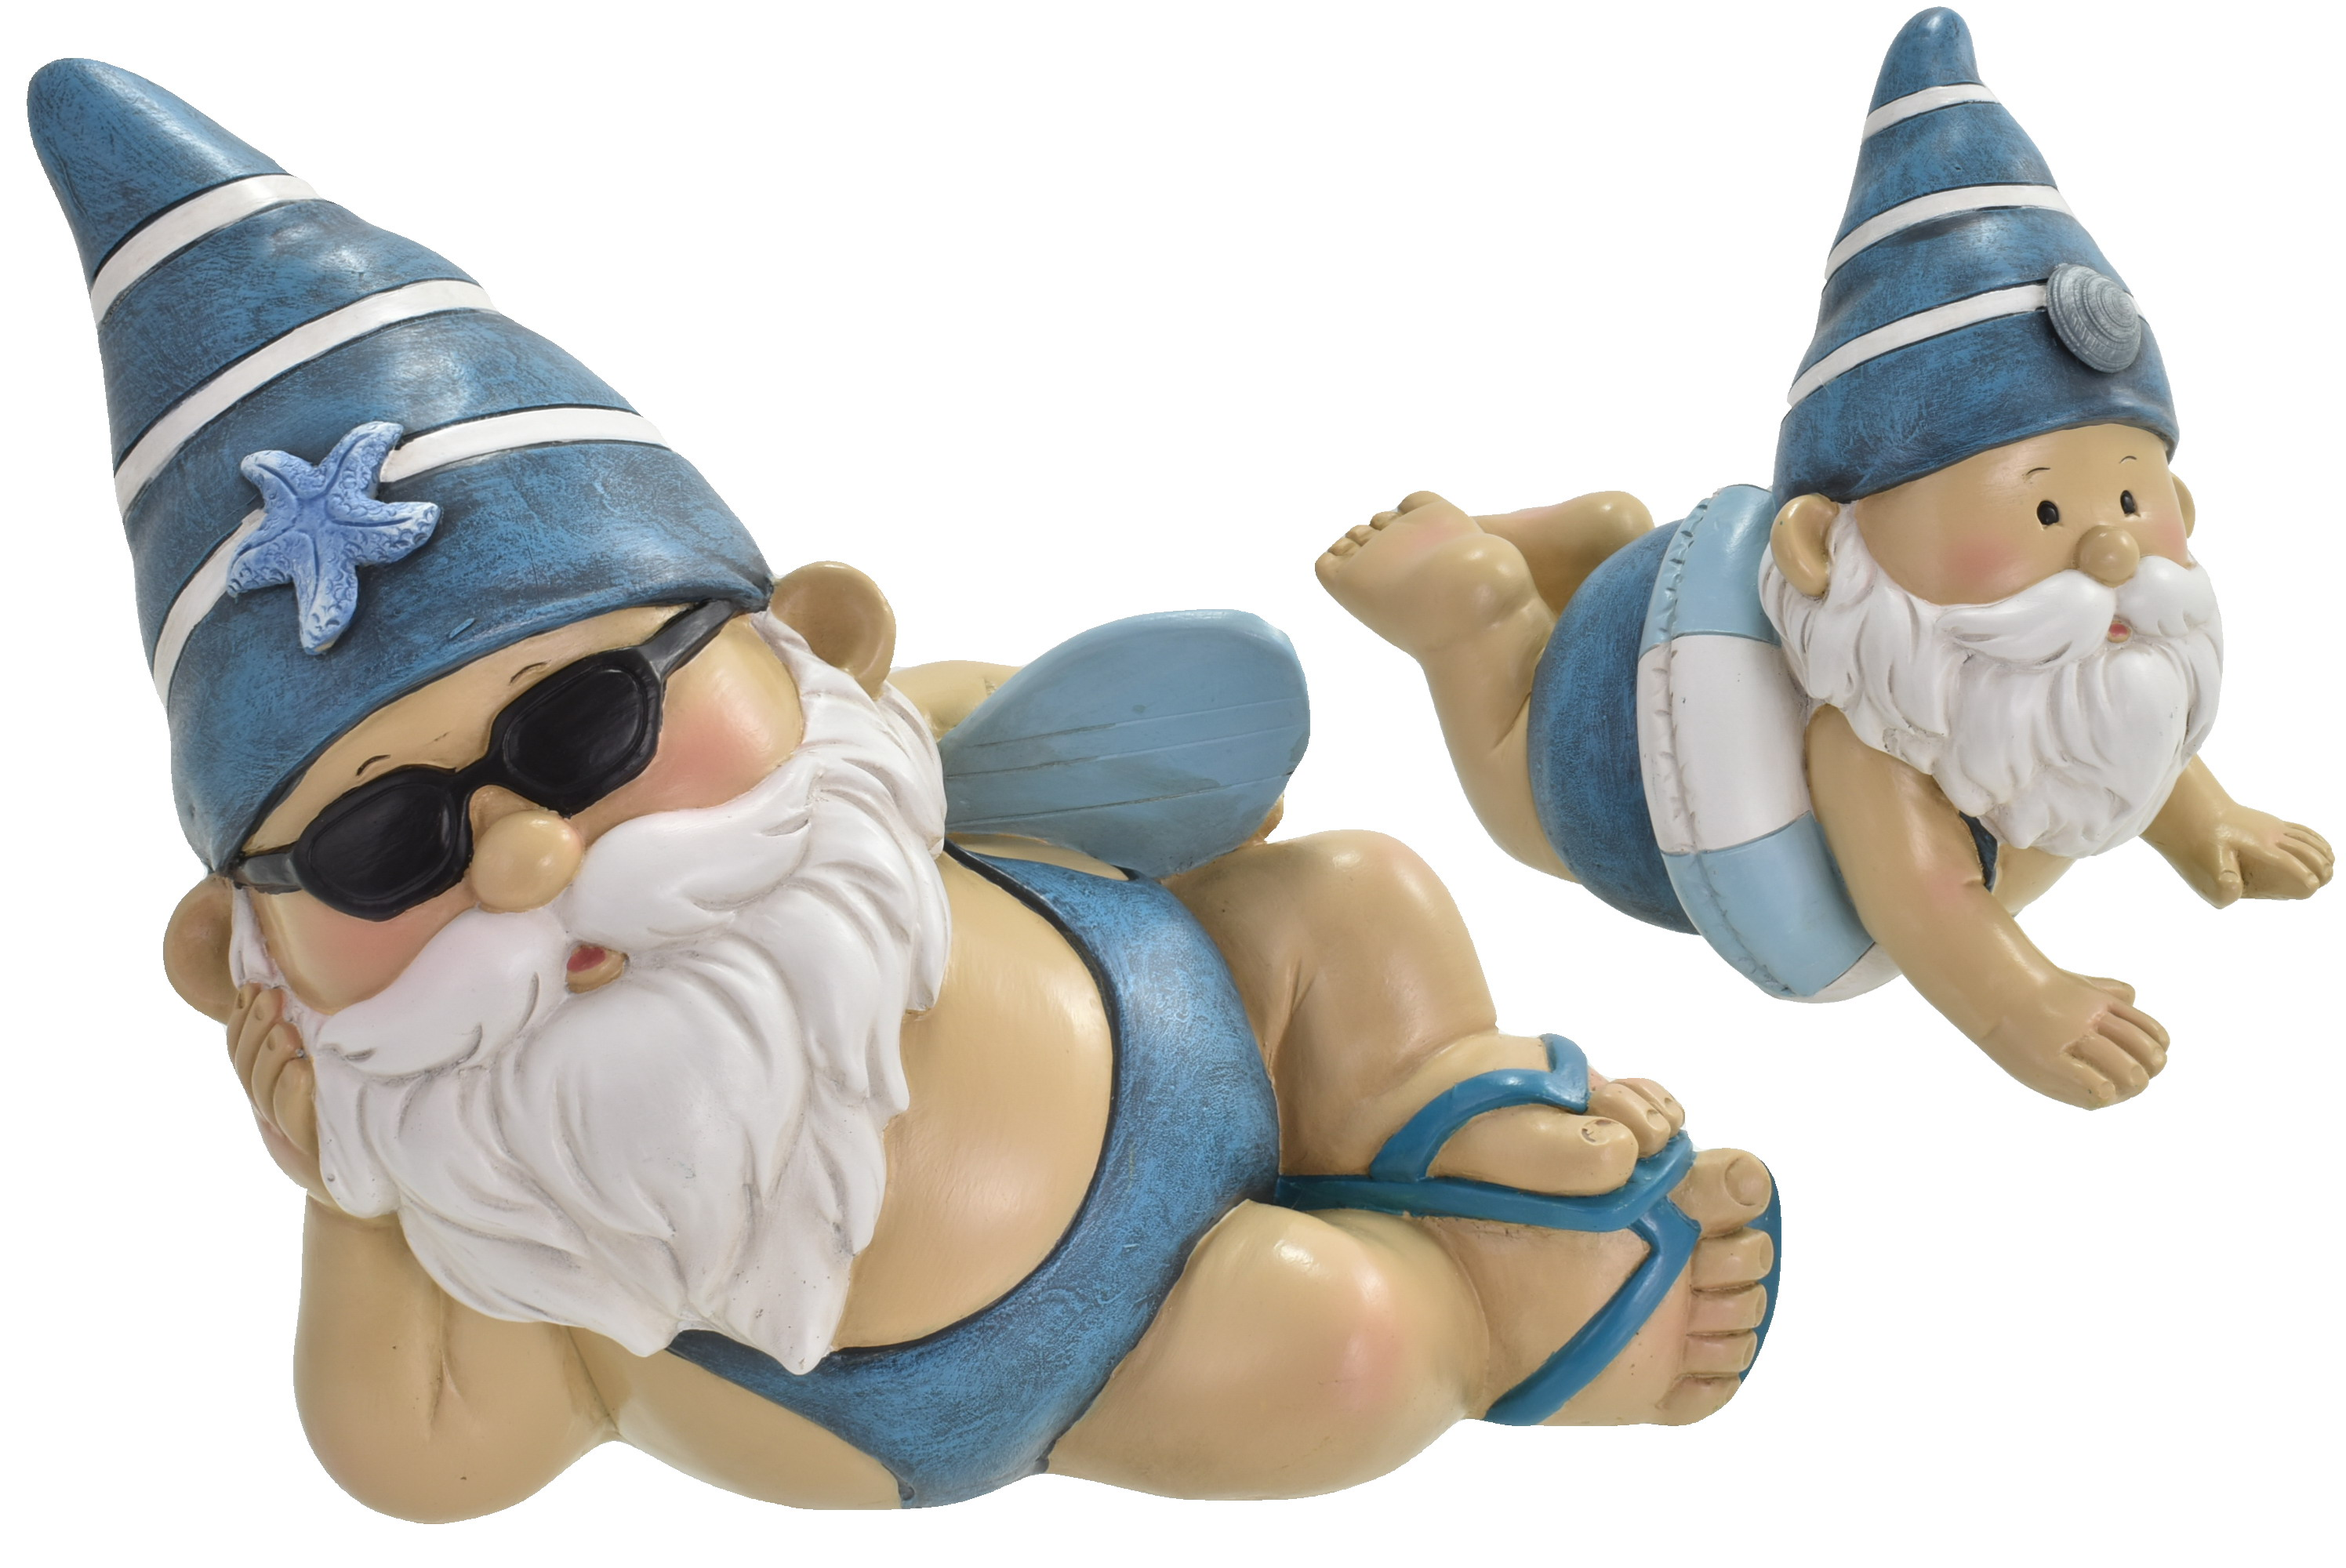 18cm Gnautical Laying Gnome Stripy Hat 2 Asst Designs